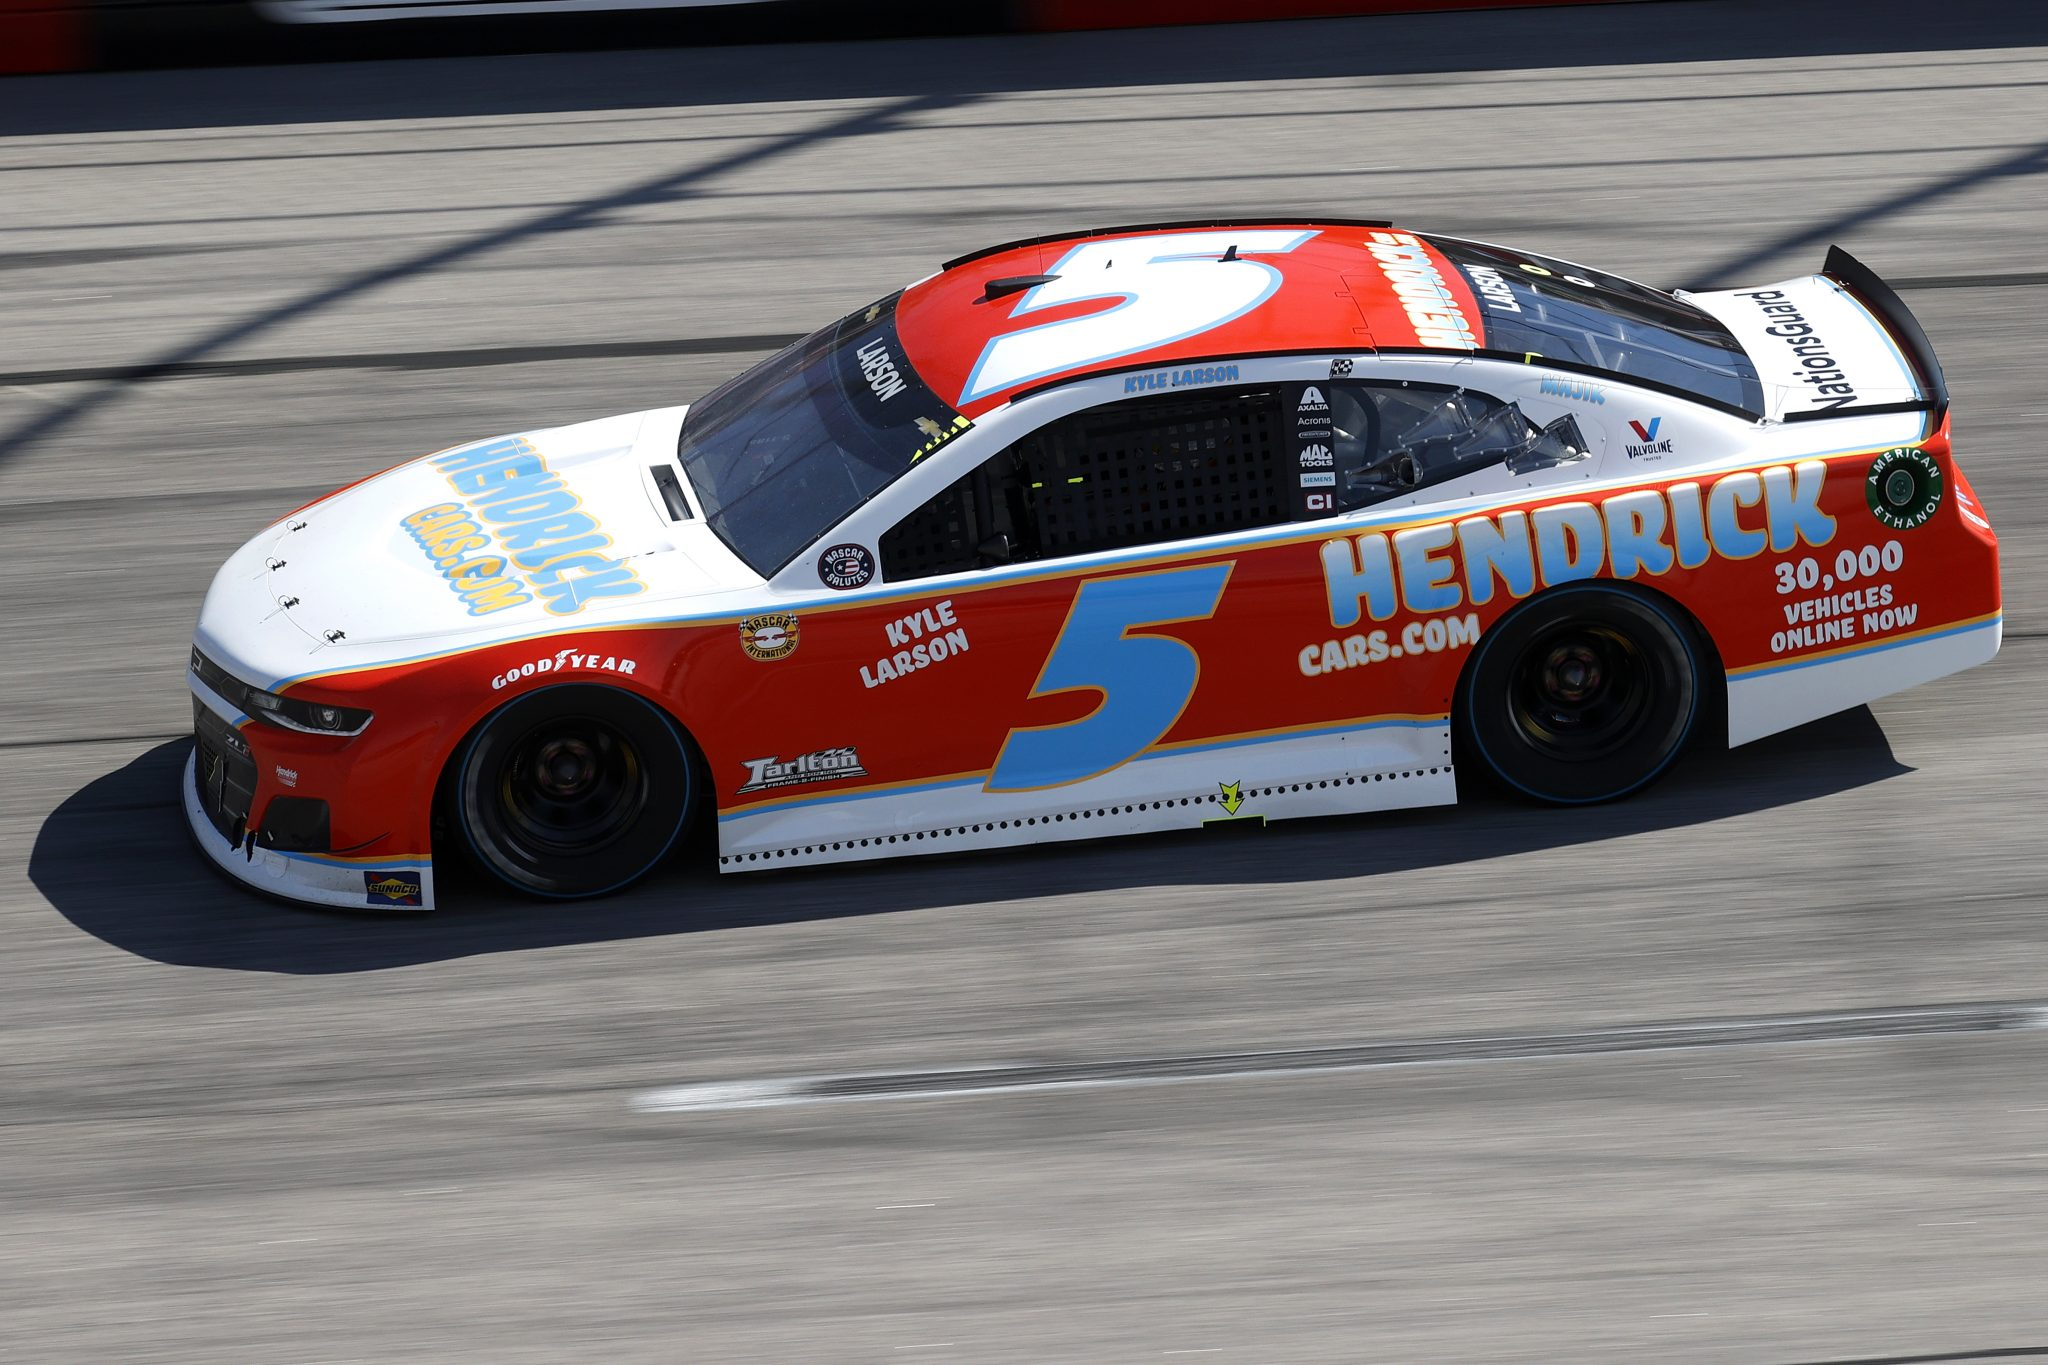 DARLINGTON, SOUTH CAROLINA - MAY 09: Kyle Larson, driver of the #5 HendrickCars.com Throwback Chevrolet, drives during the NASCAR Cup Series Goodyear 400 at Darlington Raceway on May 09, 2021 in Darlington, South Carolina. (Photo by Chris Graythen/Getty Images) | Getty Images